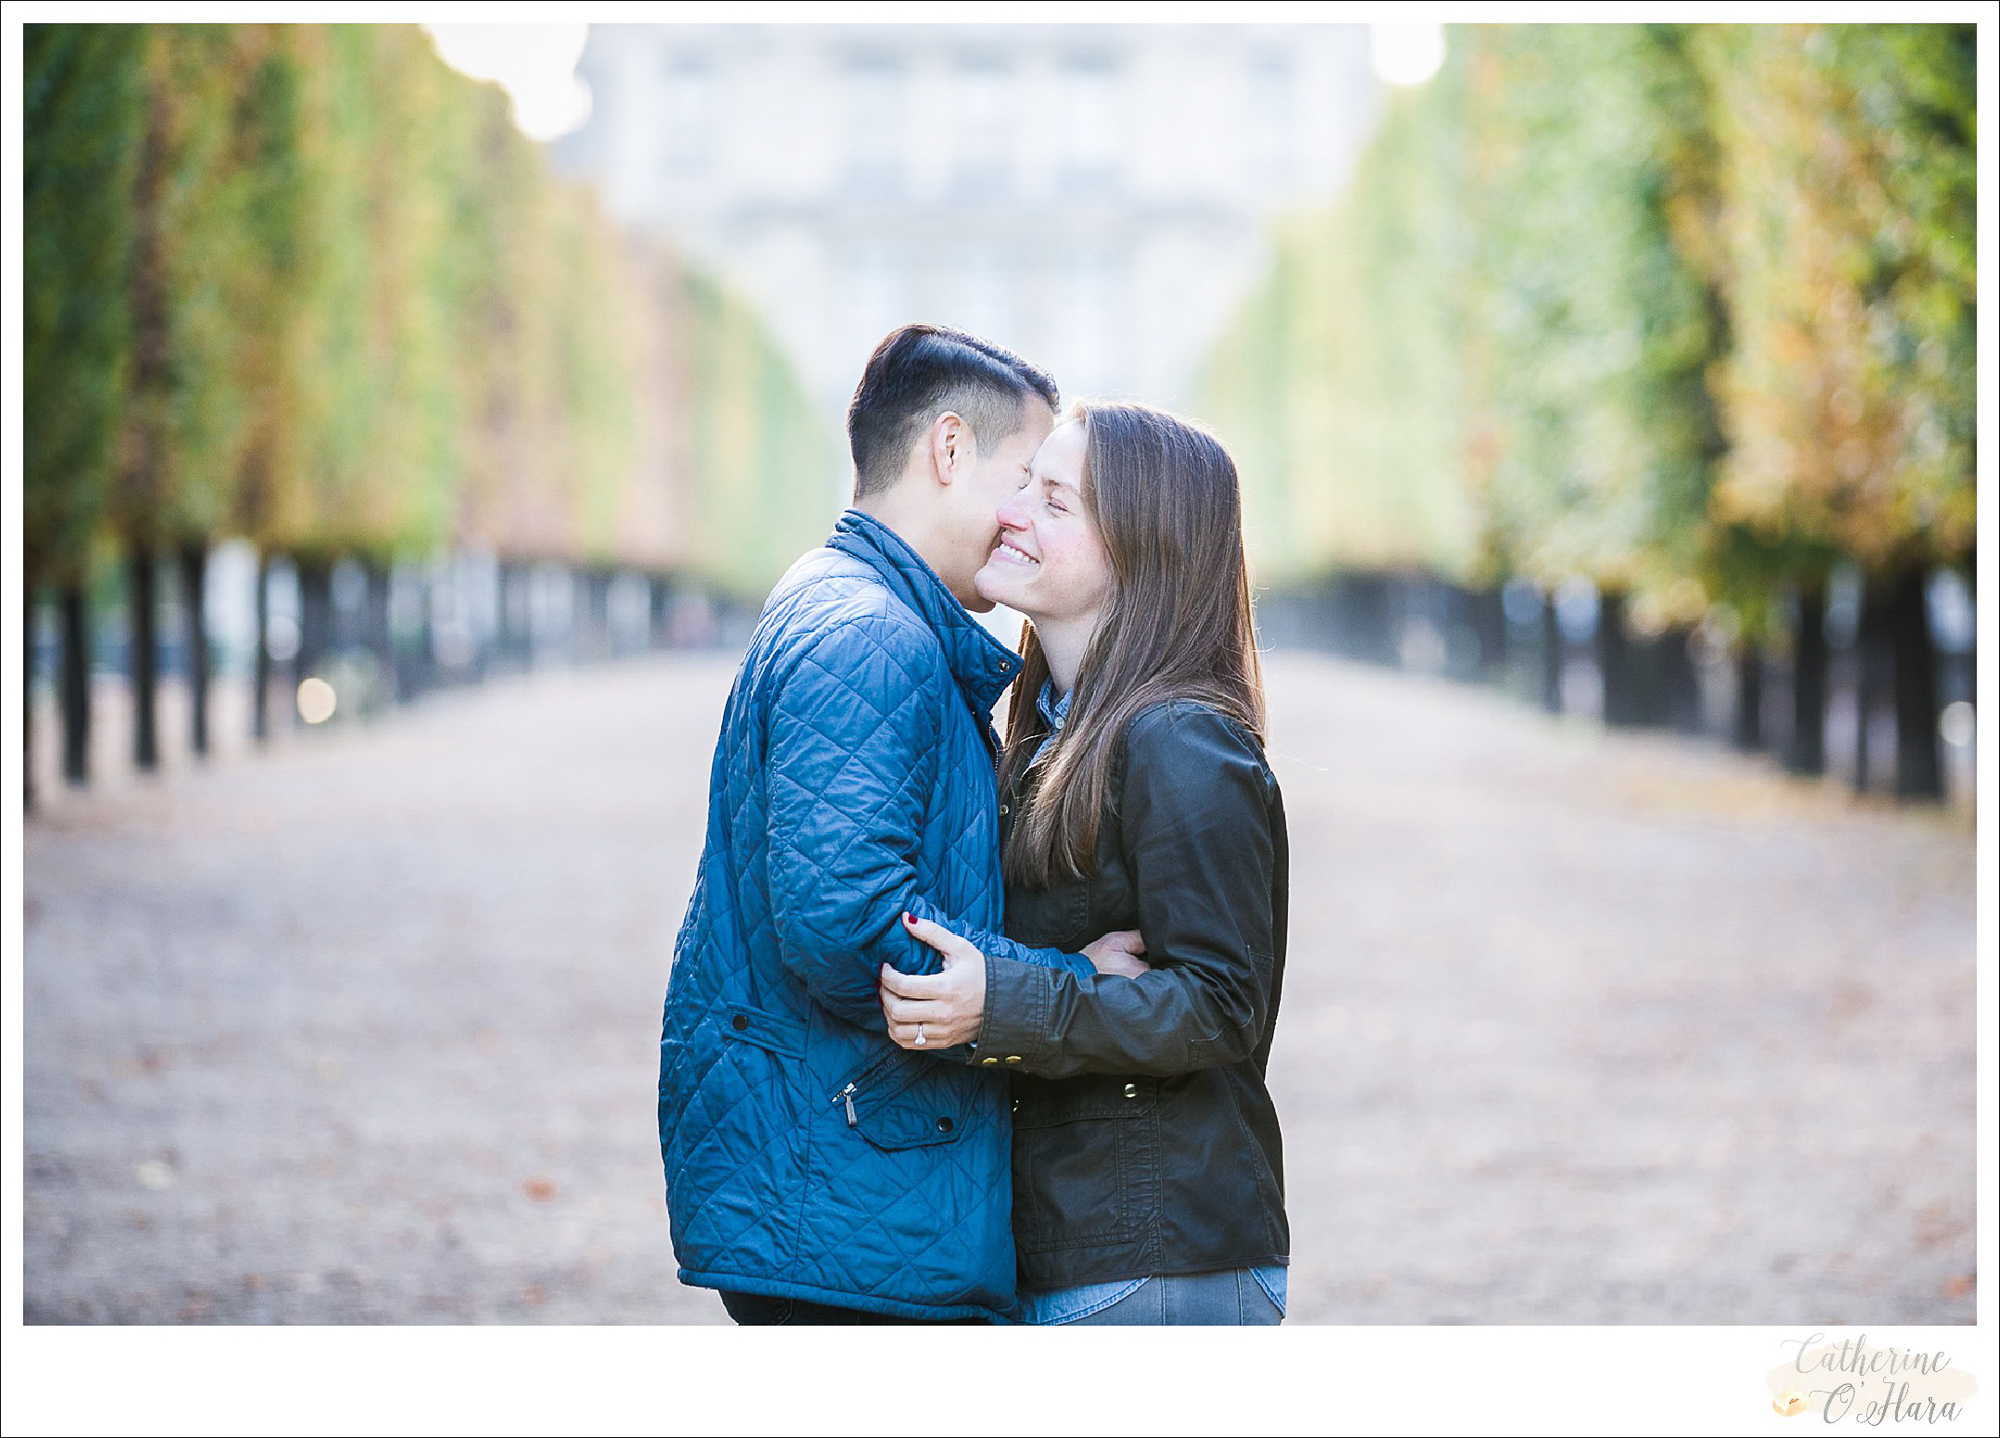 surprise proposal engagement photographer paris france-26.jpg